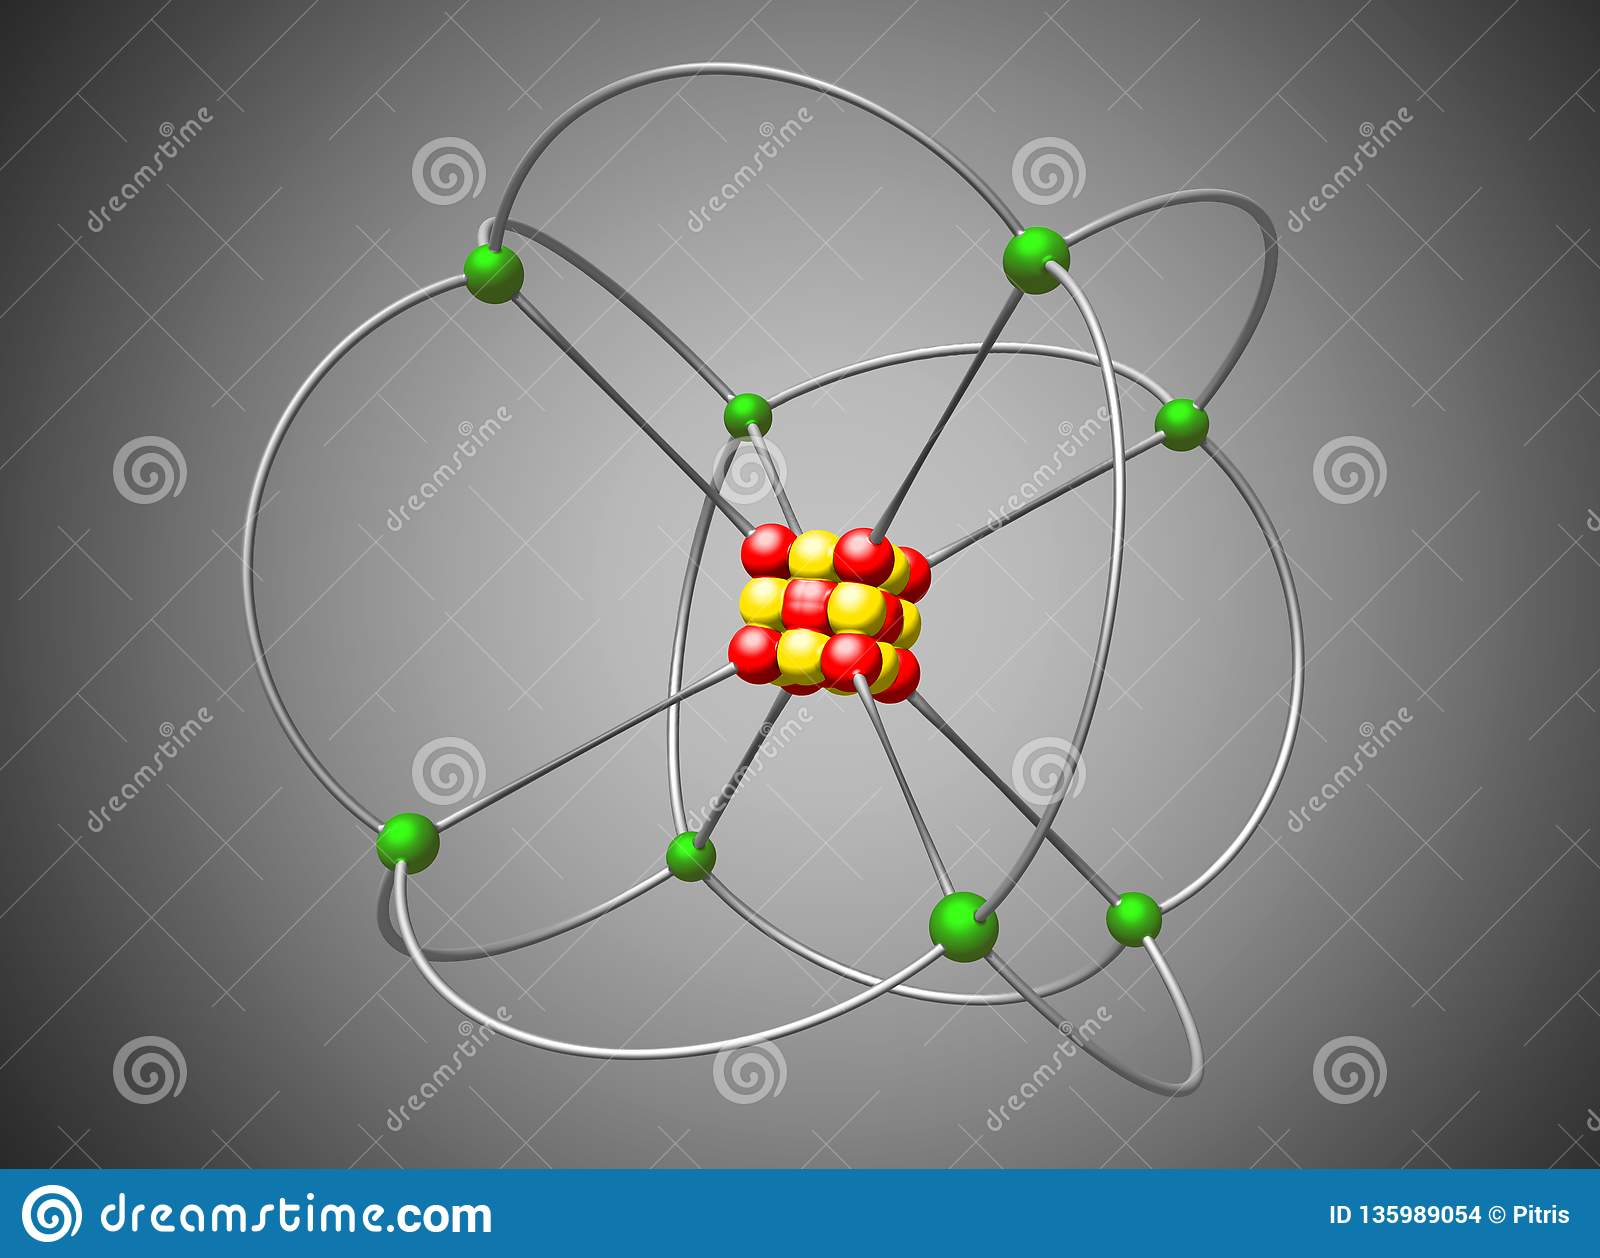 Atom Nuclear Model Abstract Atom Structure Illustration